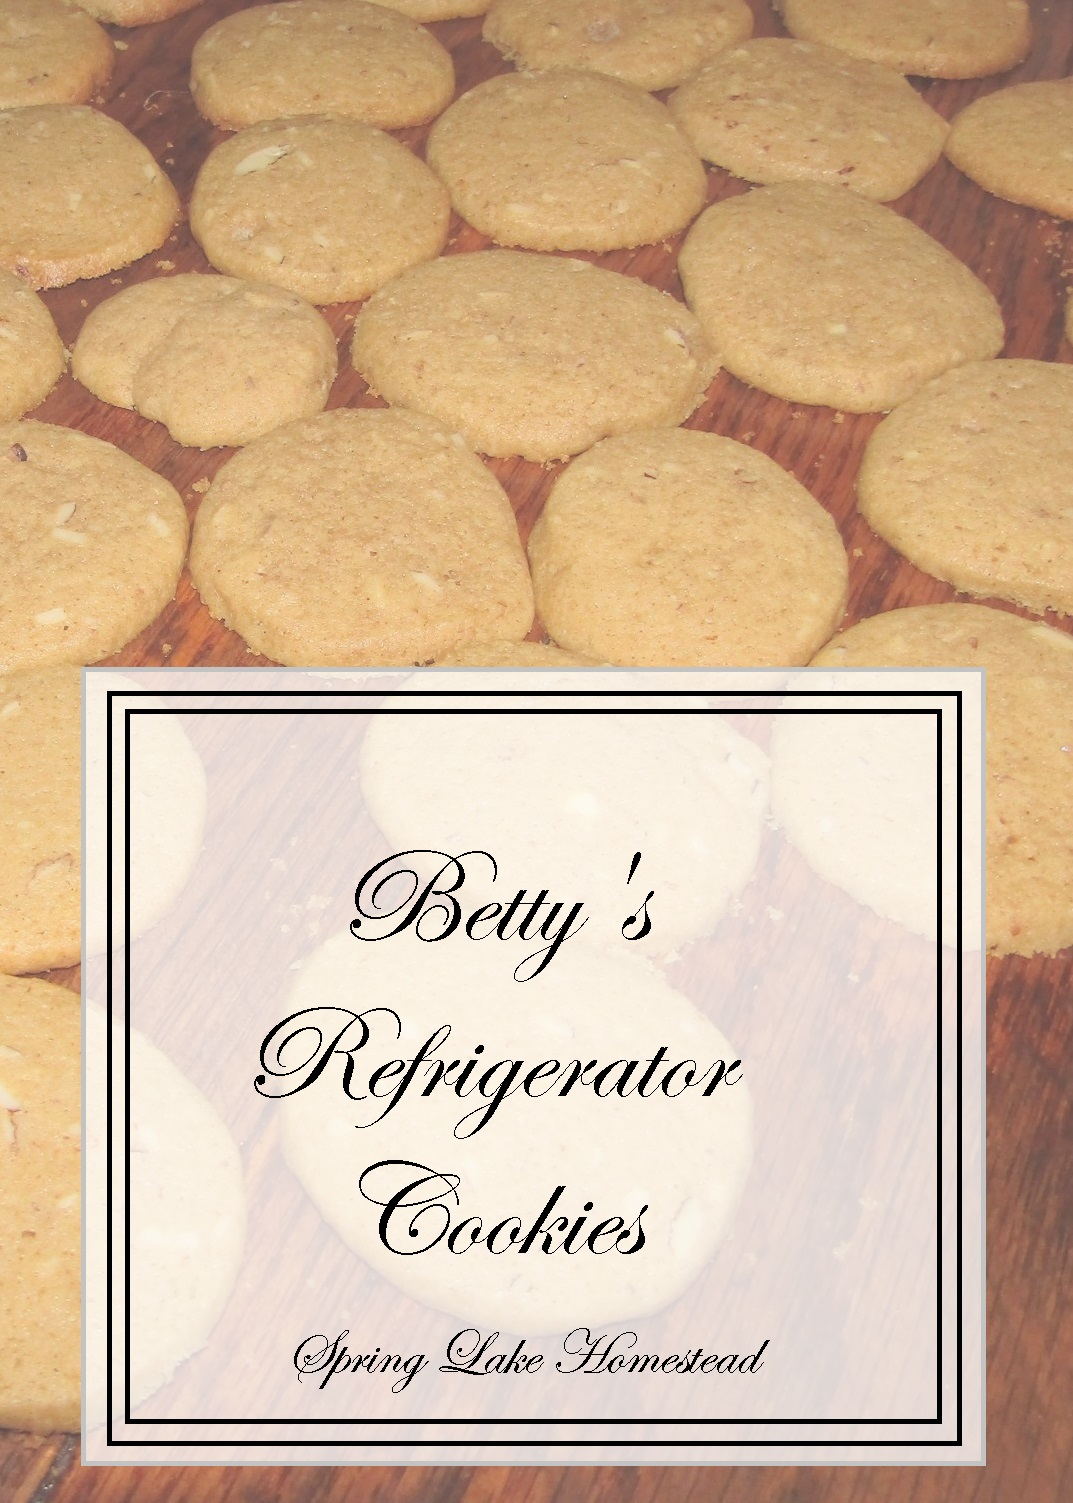 Betty's Refrigerator Cookies